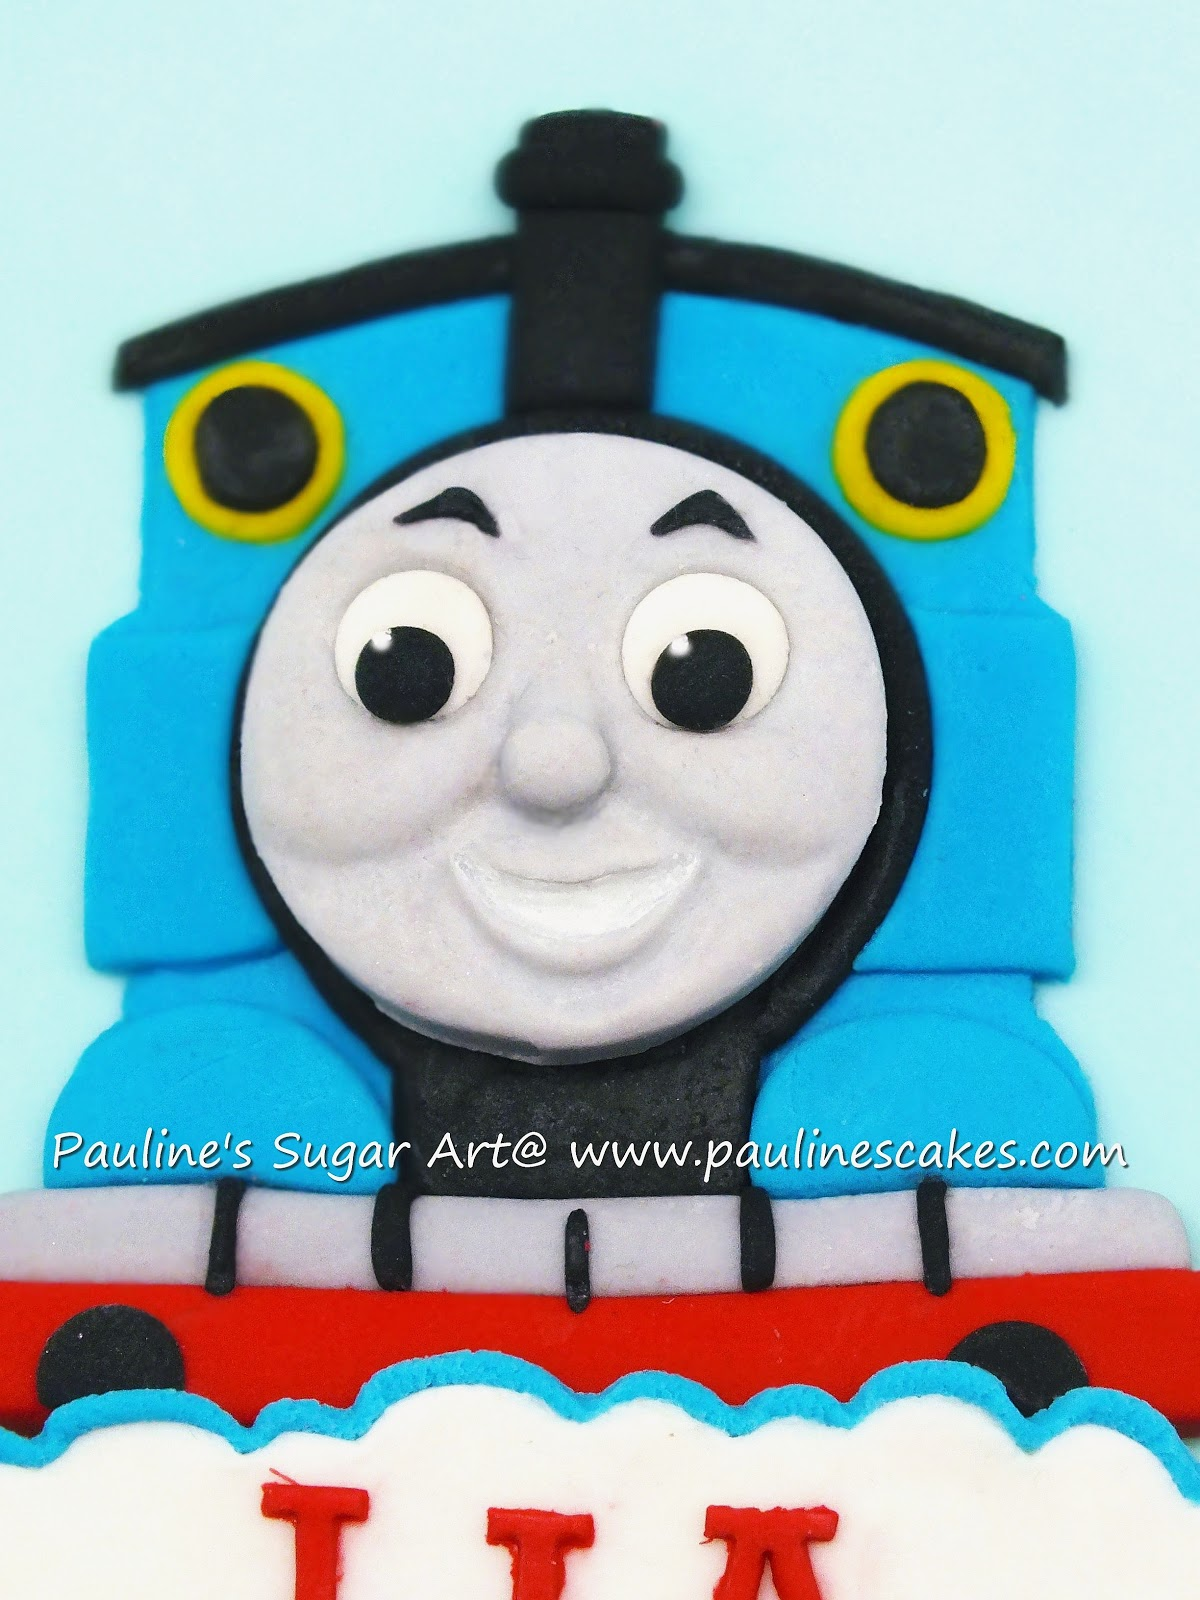 2D With 3D Effect Sugar Art Thomas The Engine